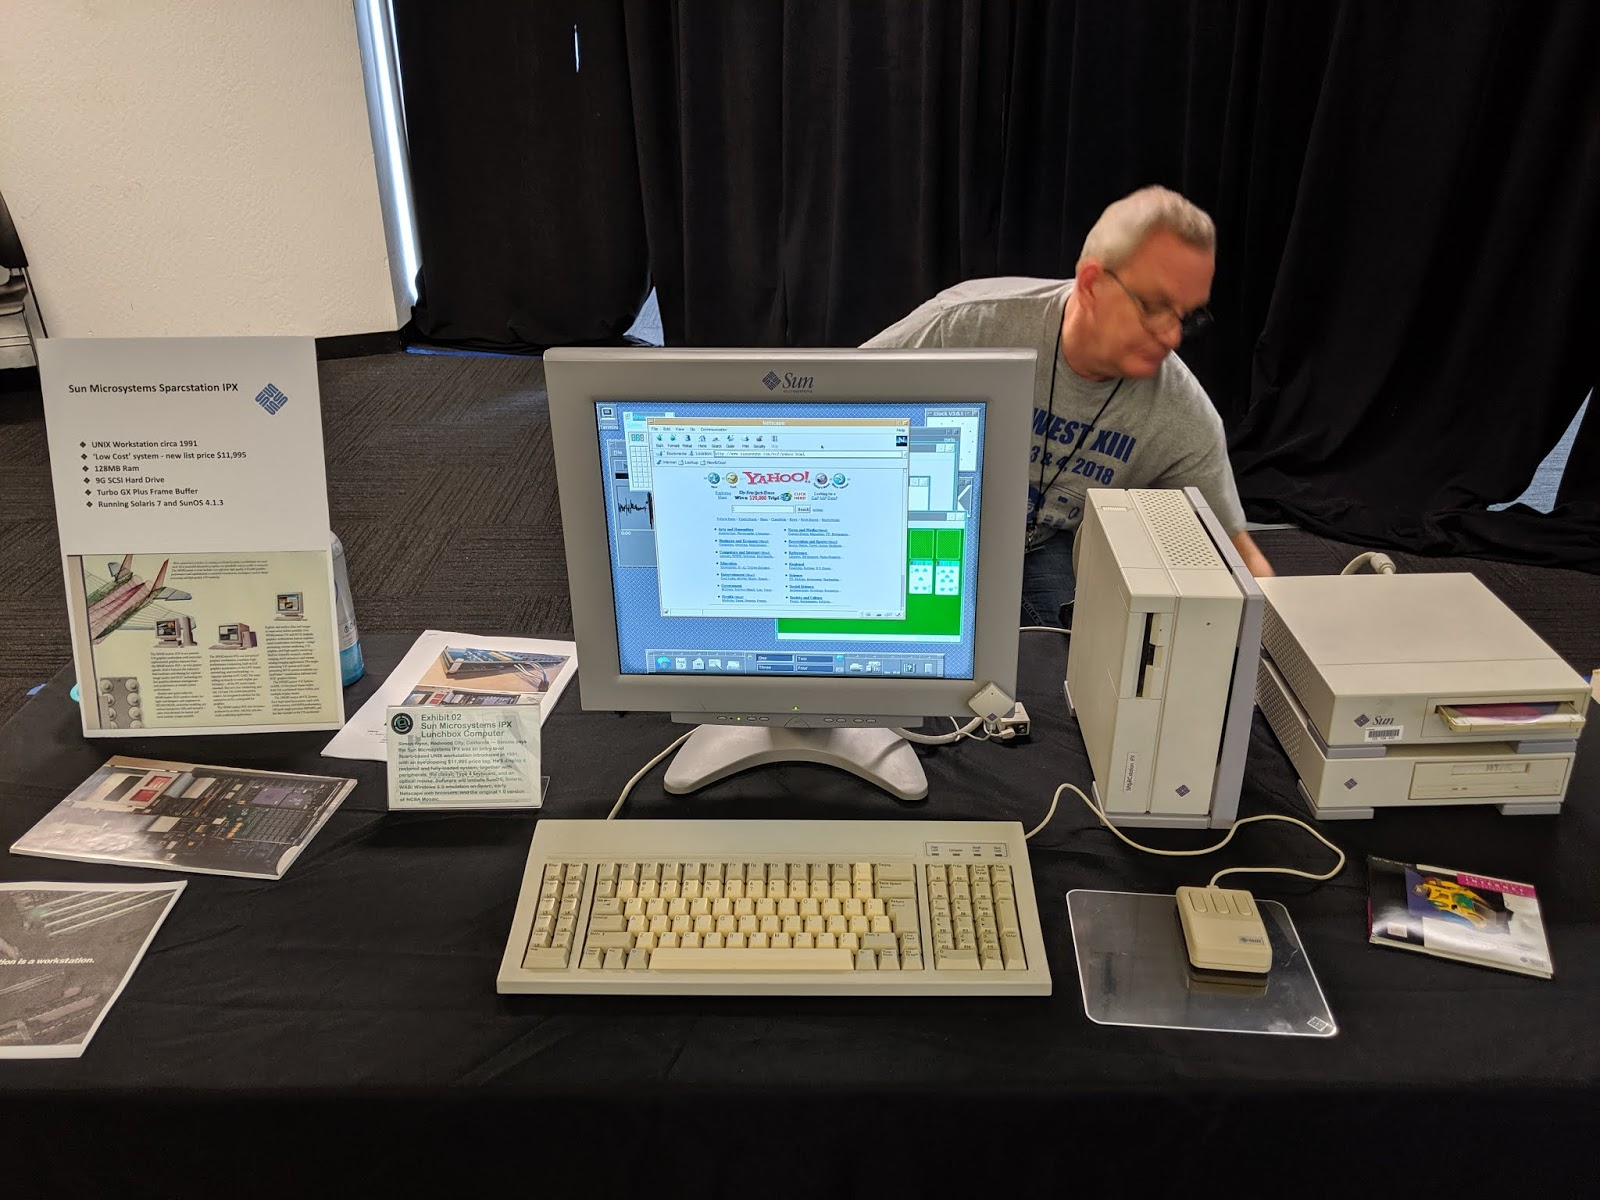 Power stuff and other stuff at Vintage Computer Festival